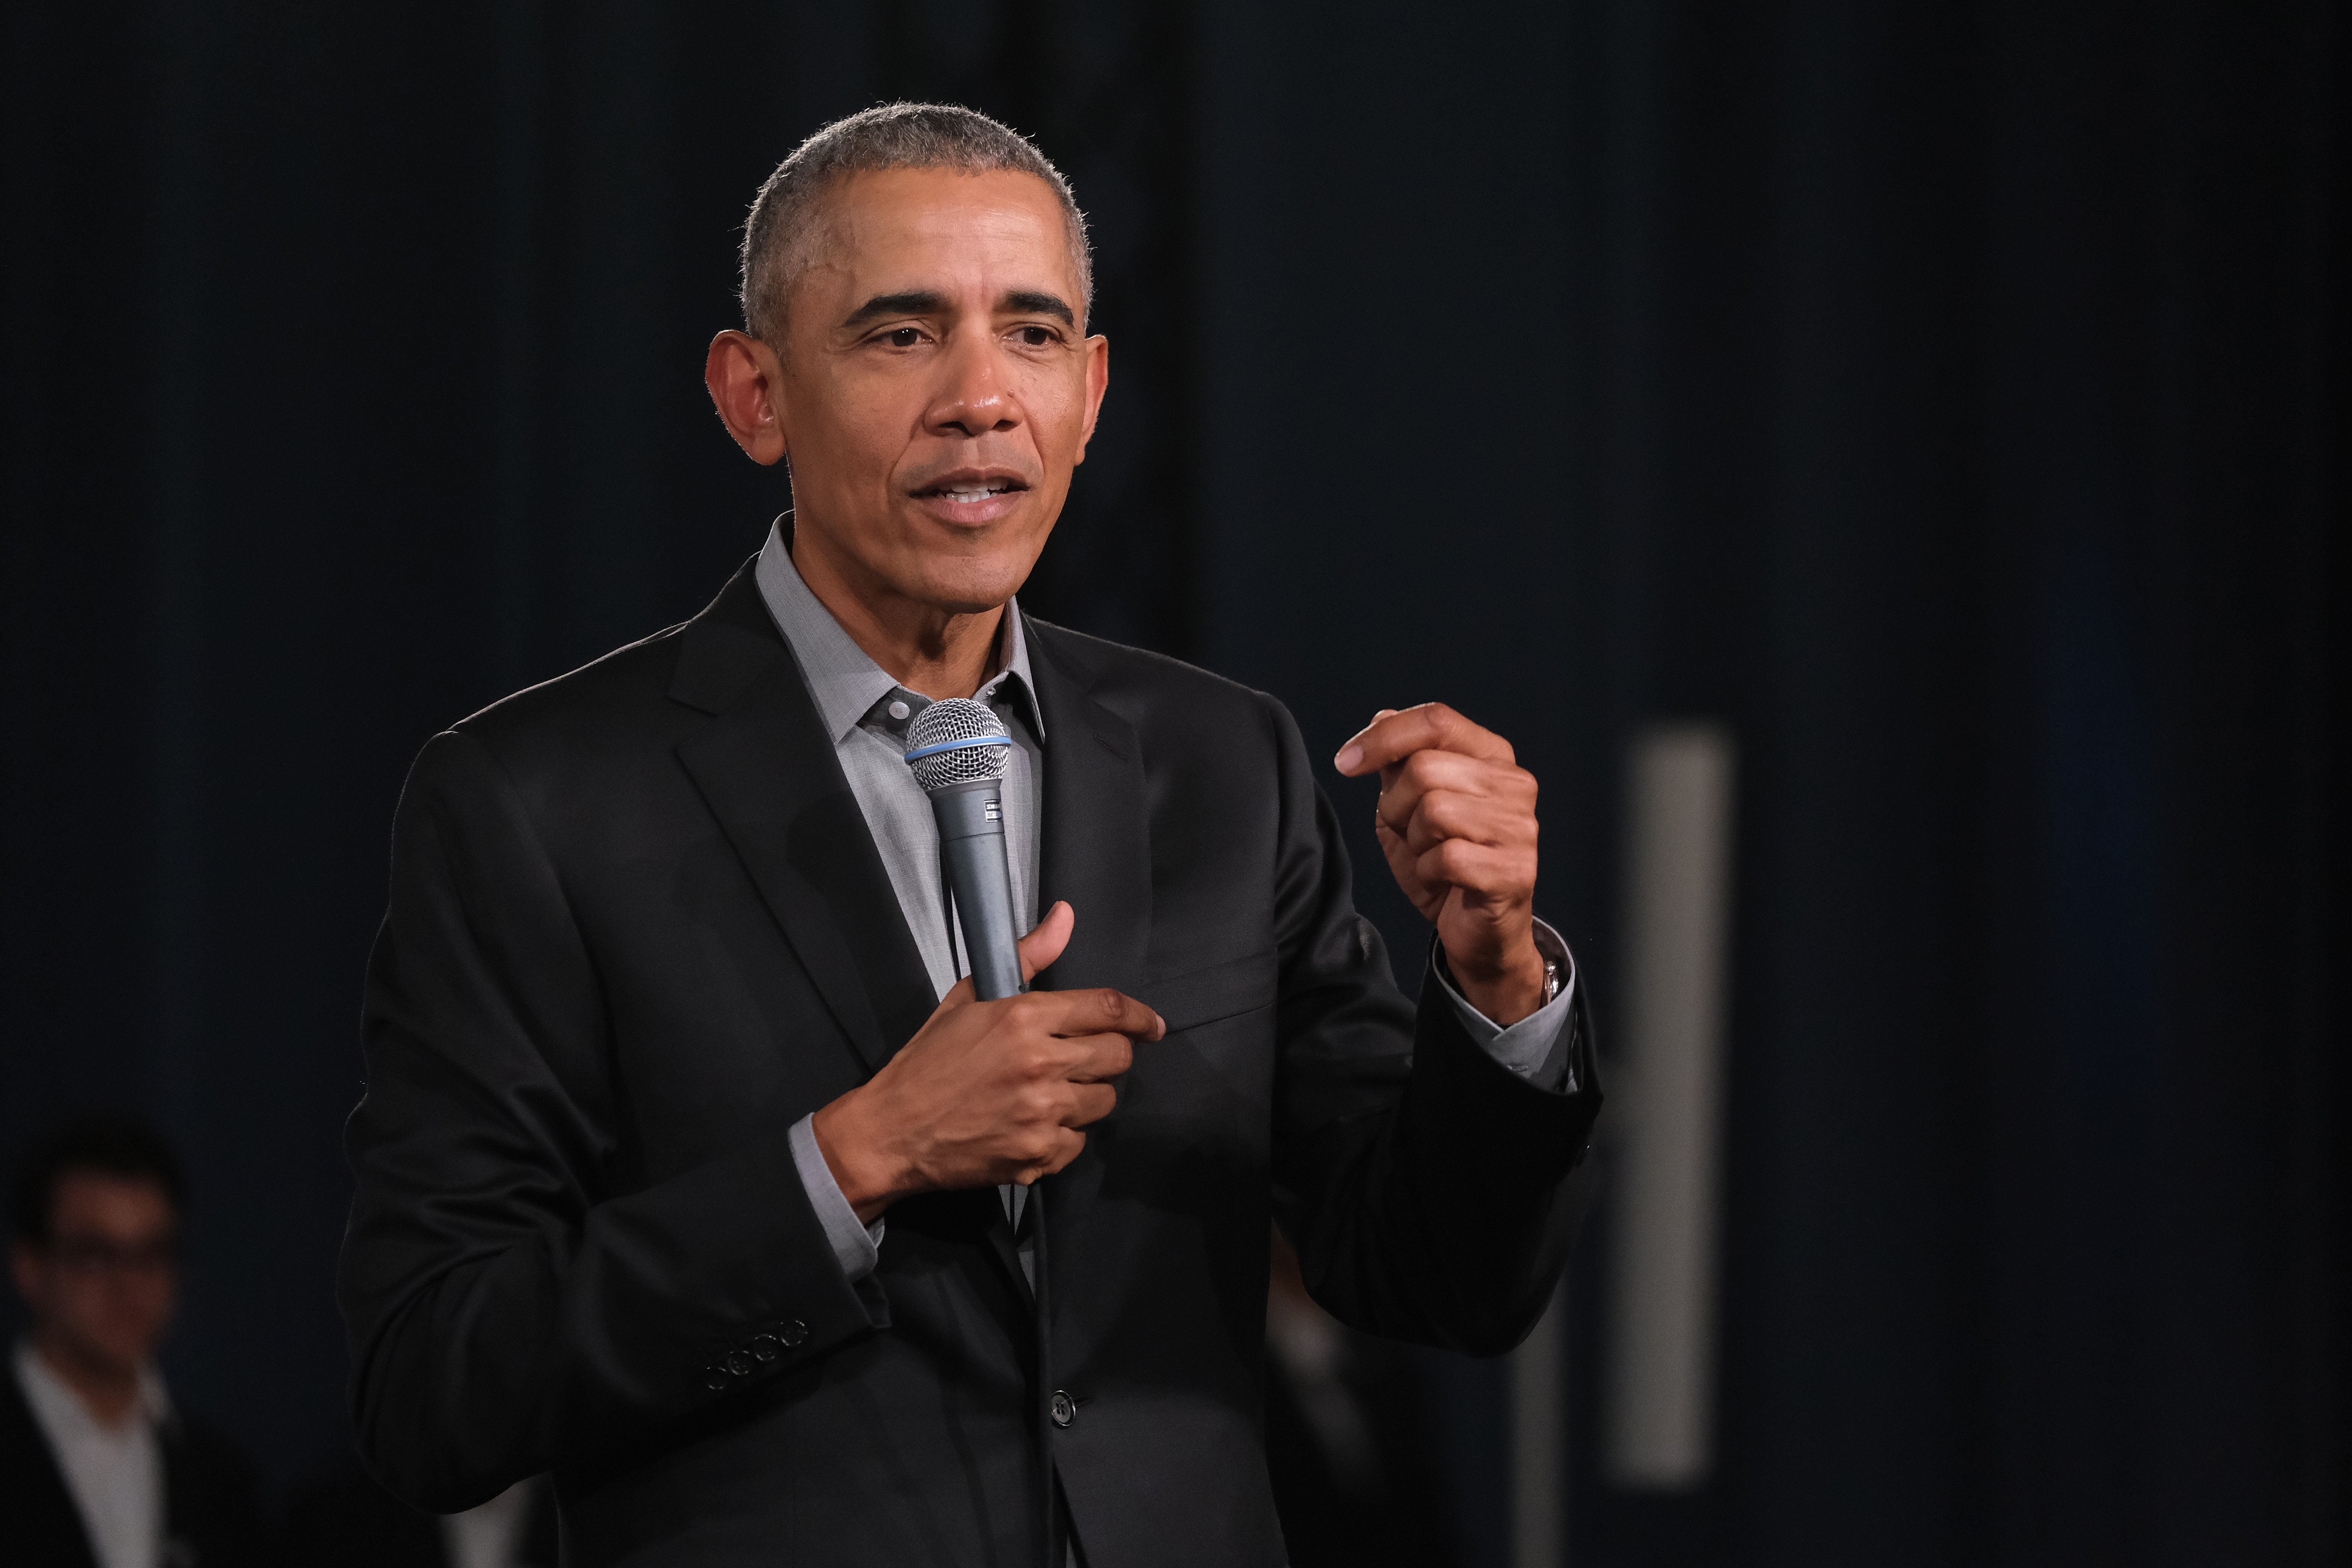 Former U.S. President Barack Obama at a Town Hall-styled session on Apr. 06, 2019 in Berlin, Germany | Photo: Getty Images